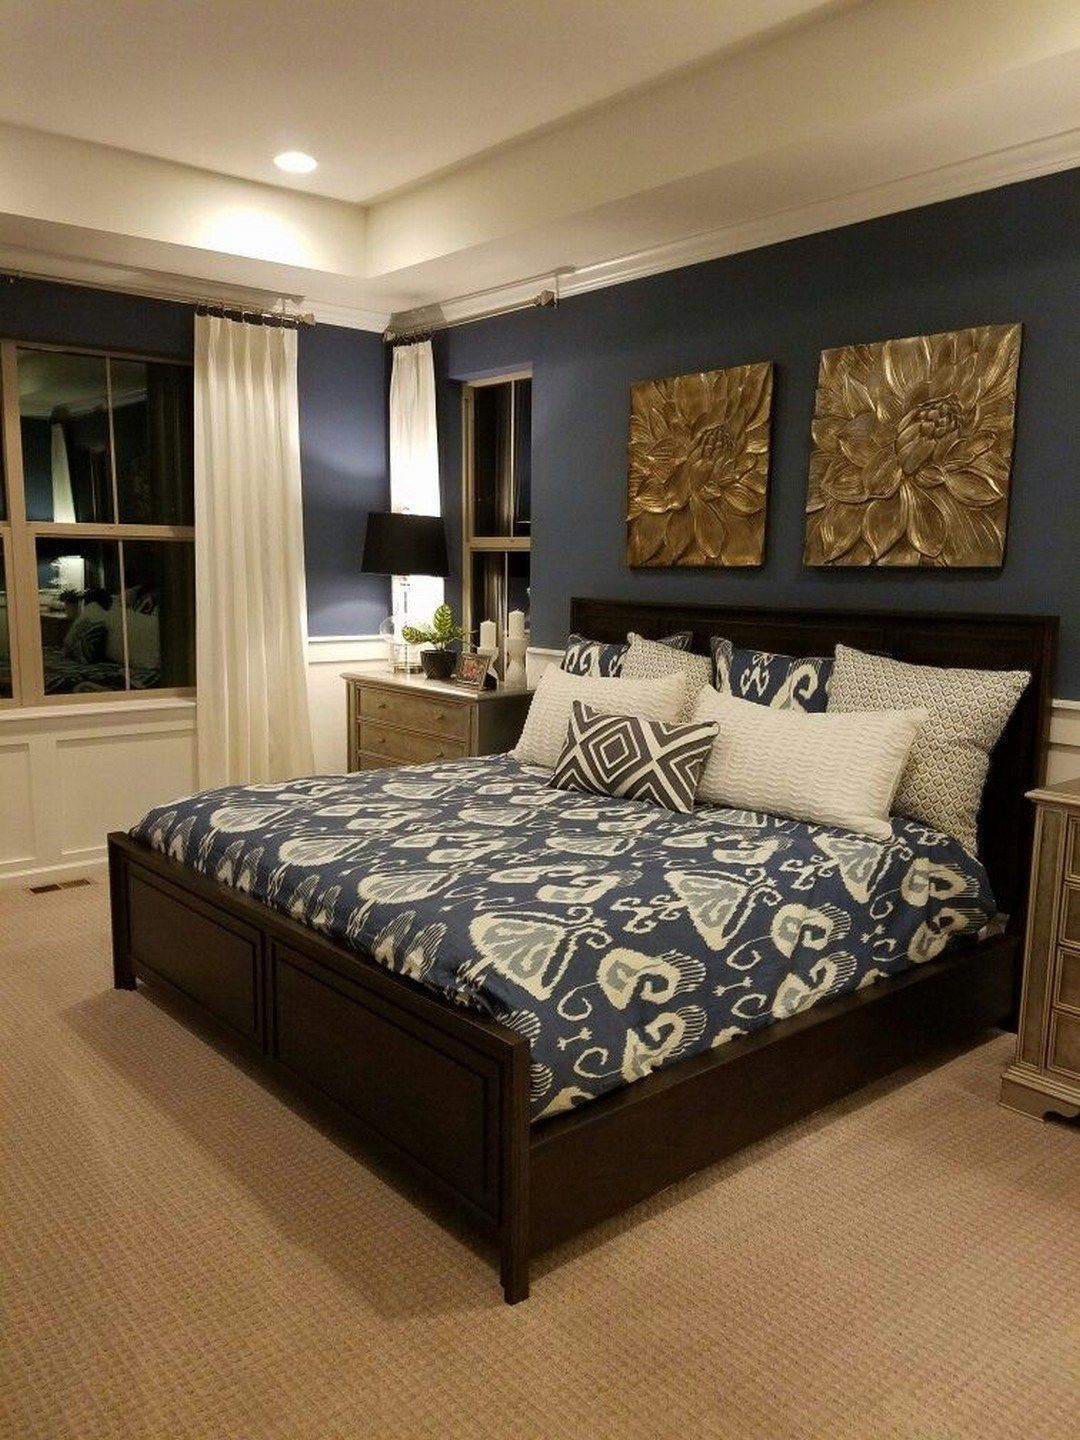 40 Gorgeous Small Master Bedroom Ideas In 2020 Decor Inspirations In 2020 Master Bedroom Colors Small Master Bedroom Luxury Bedroom Master